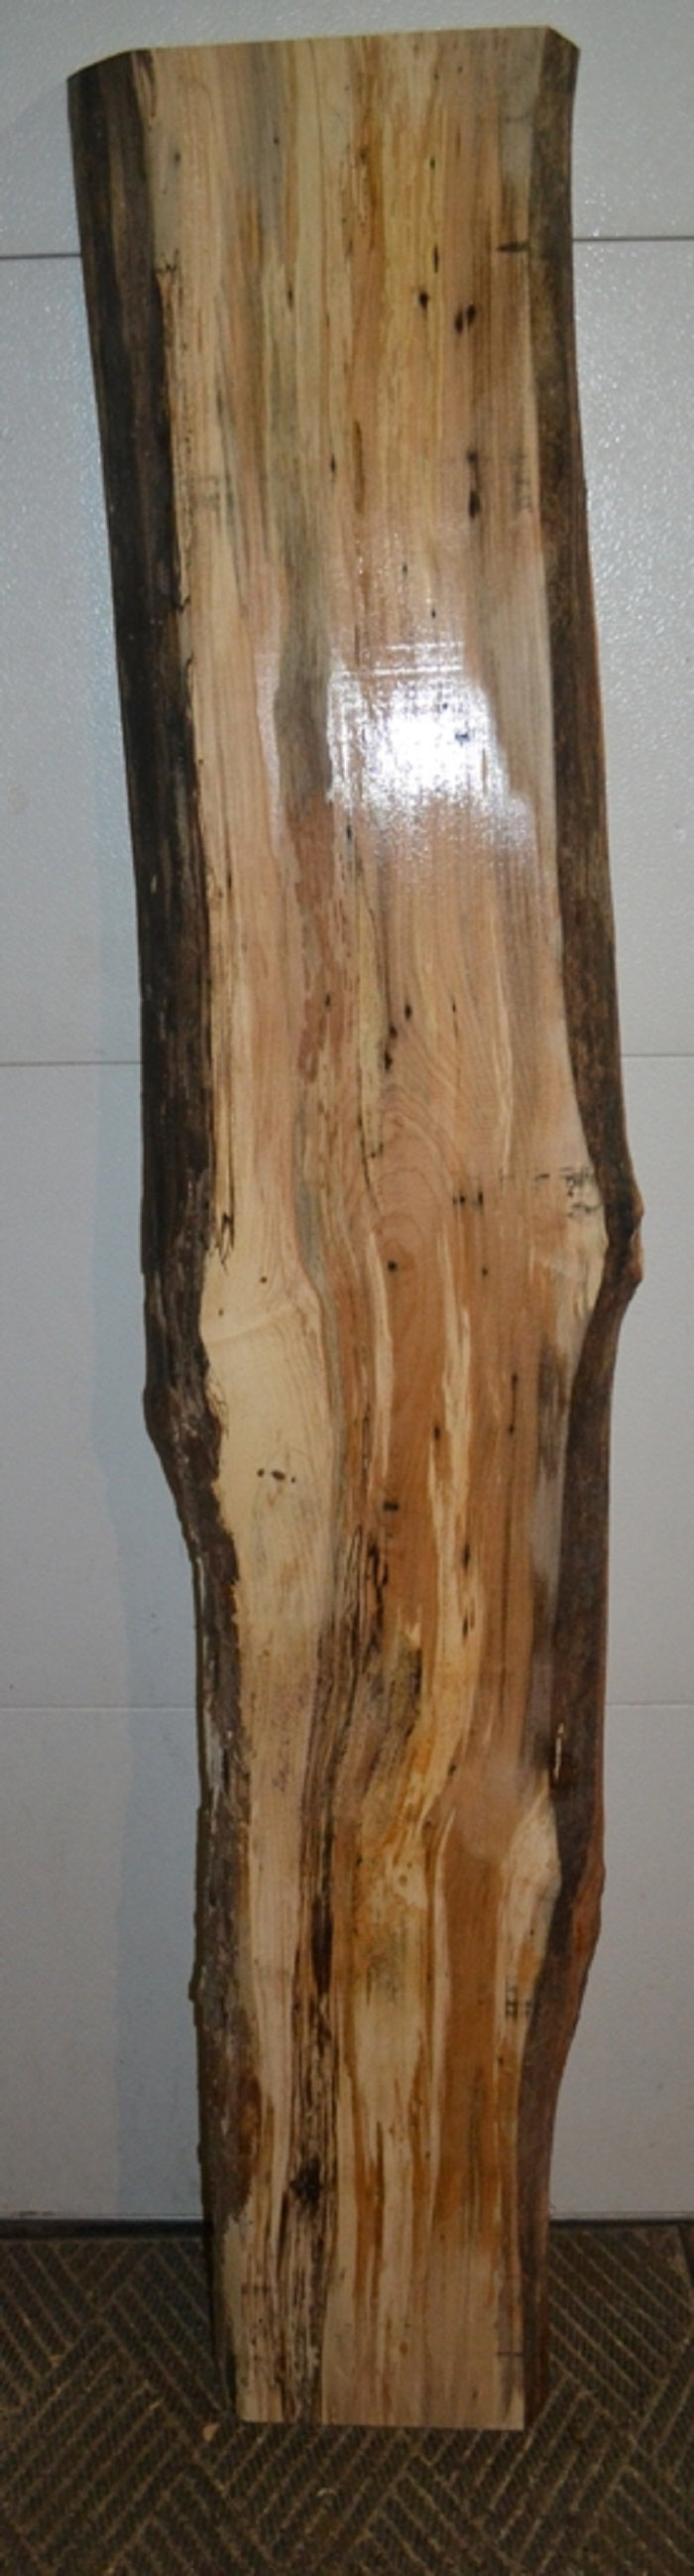 Spalted Maple Live Edge Slab- SM-102 (SOLD)